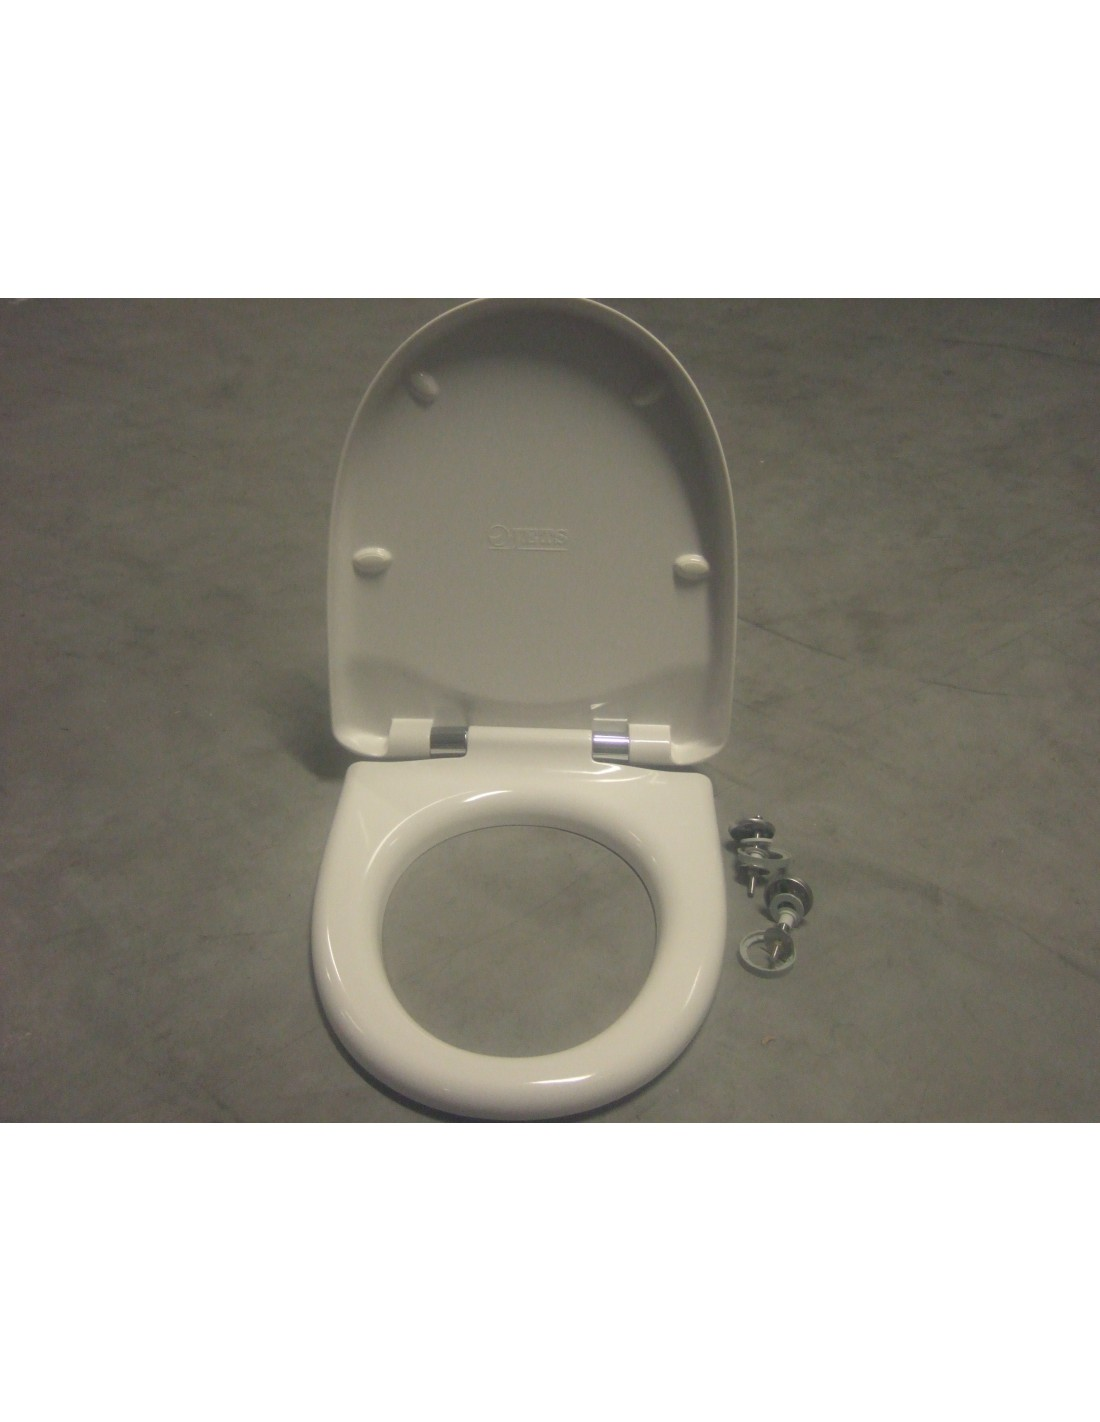 Toilet sit and cover jets model no 069608810 maristal e catalog - Toilet toilet model ...